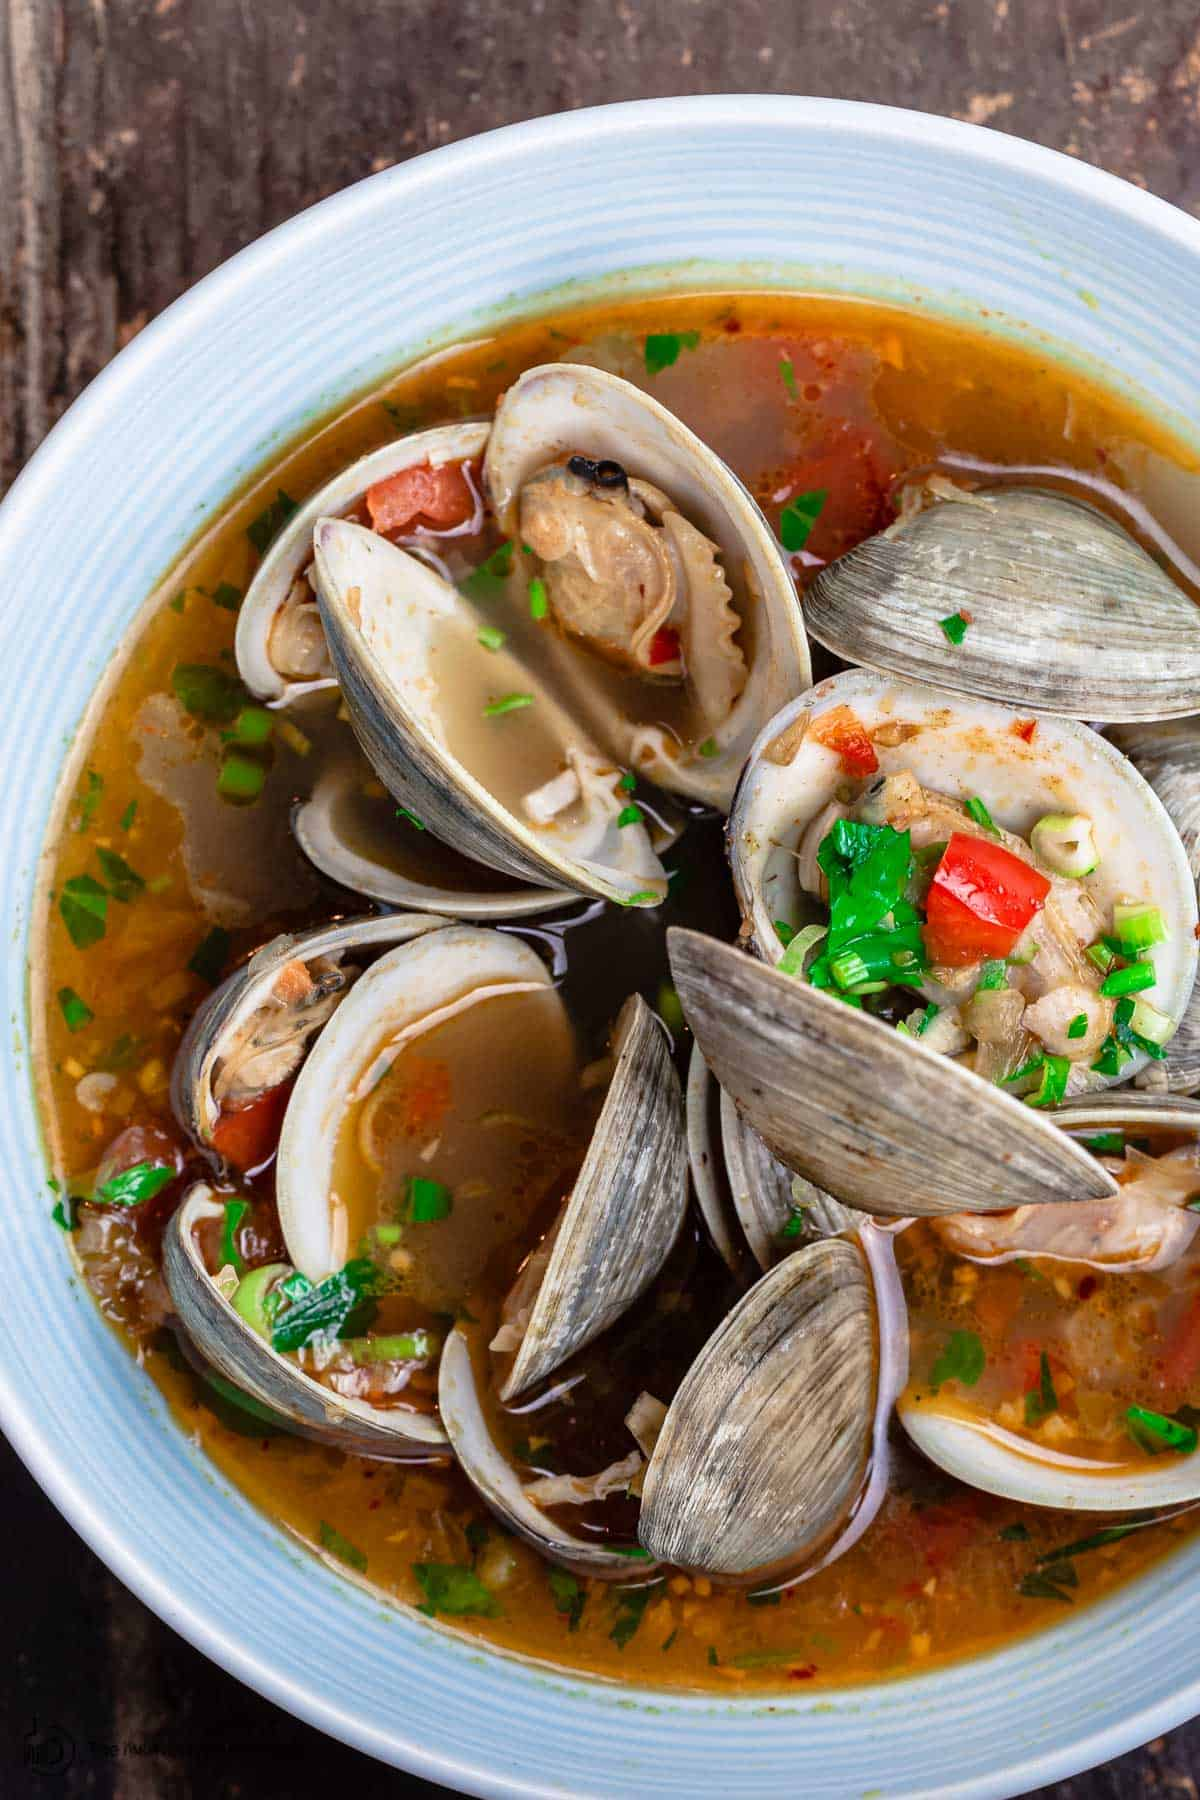 Clams in a dinner bowl with lots of broth